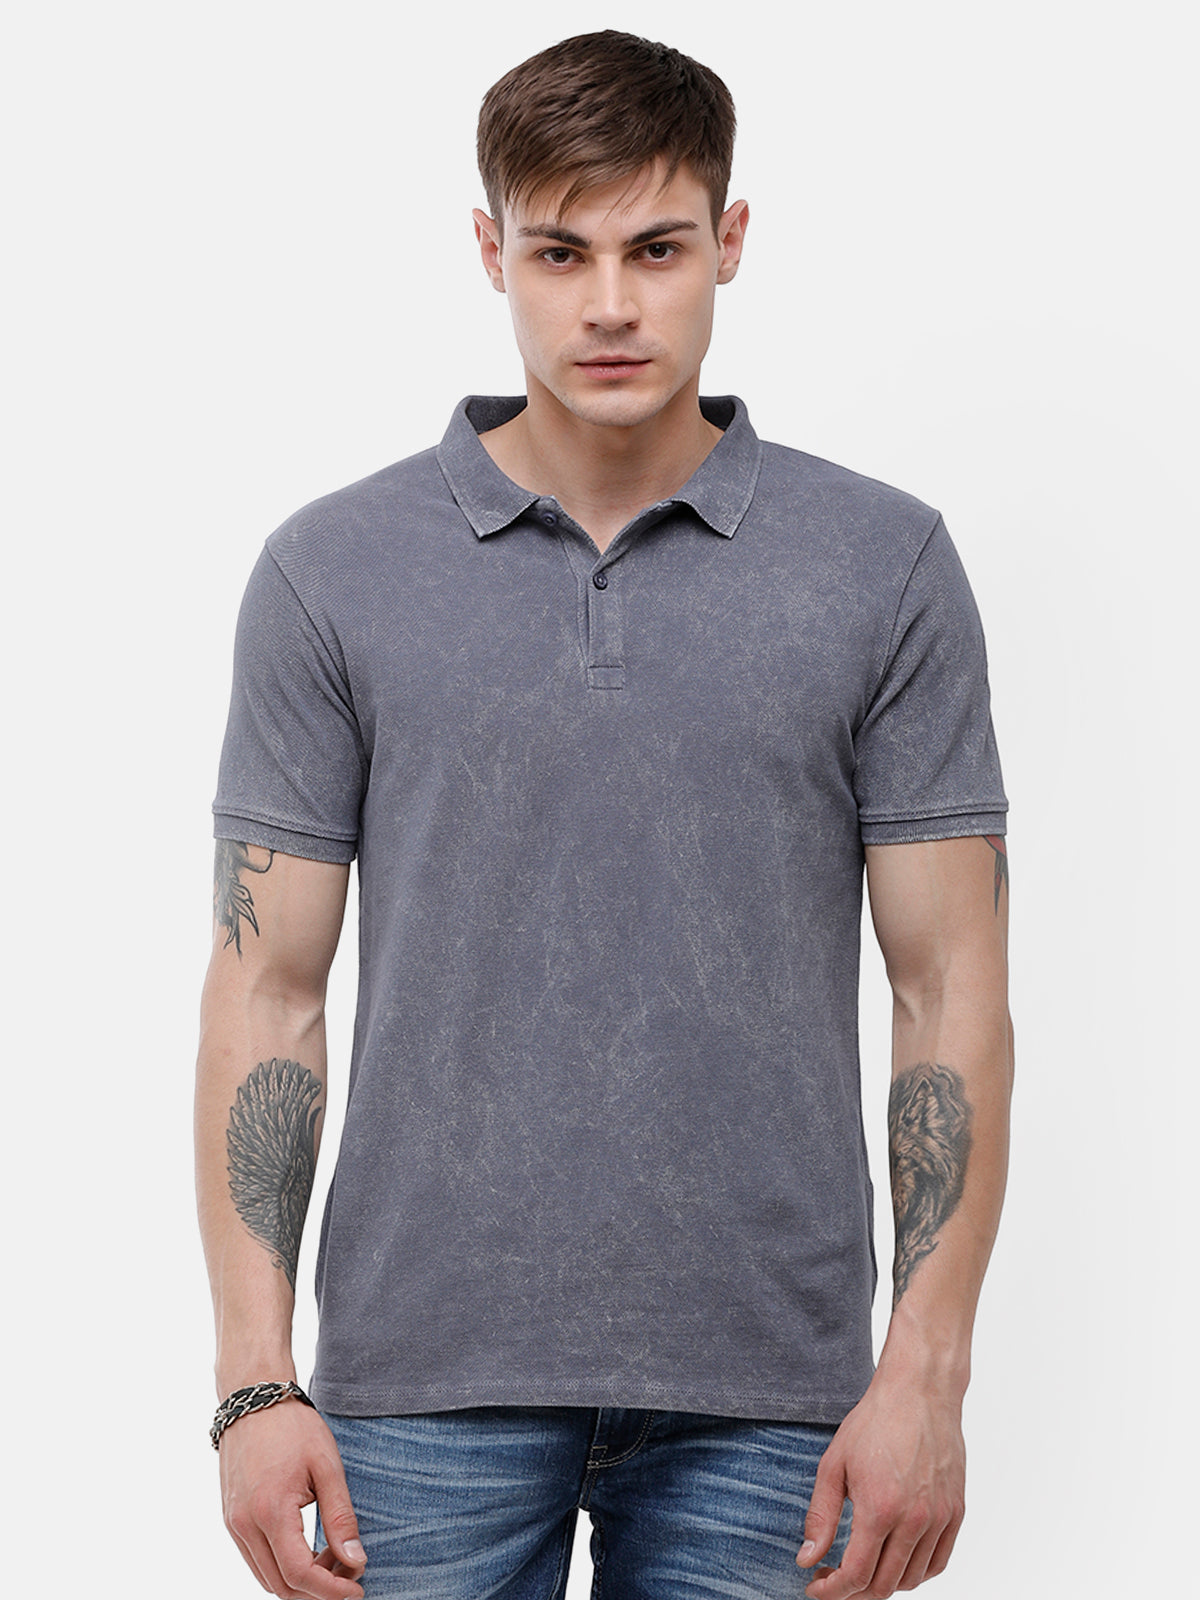 Men's Gray polo half sleeve T-shirt